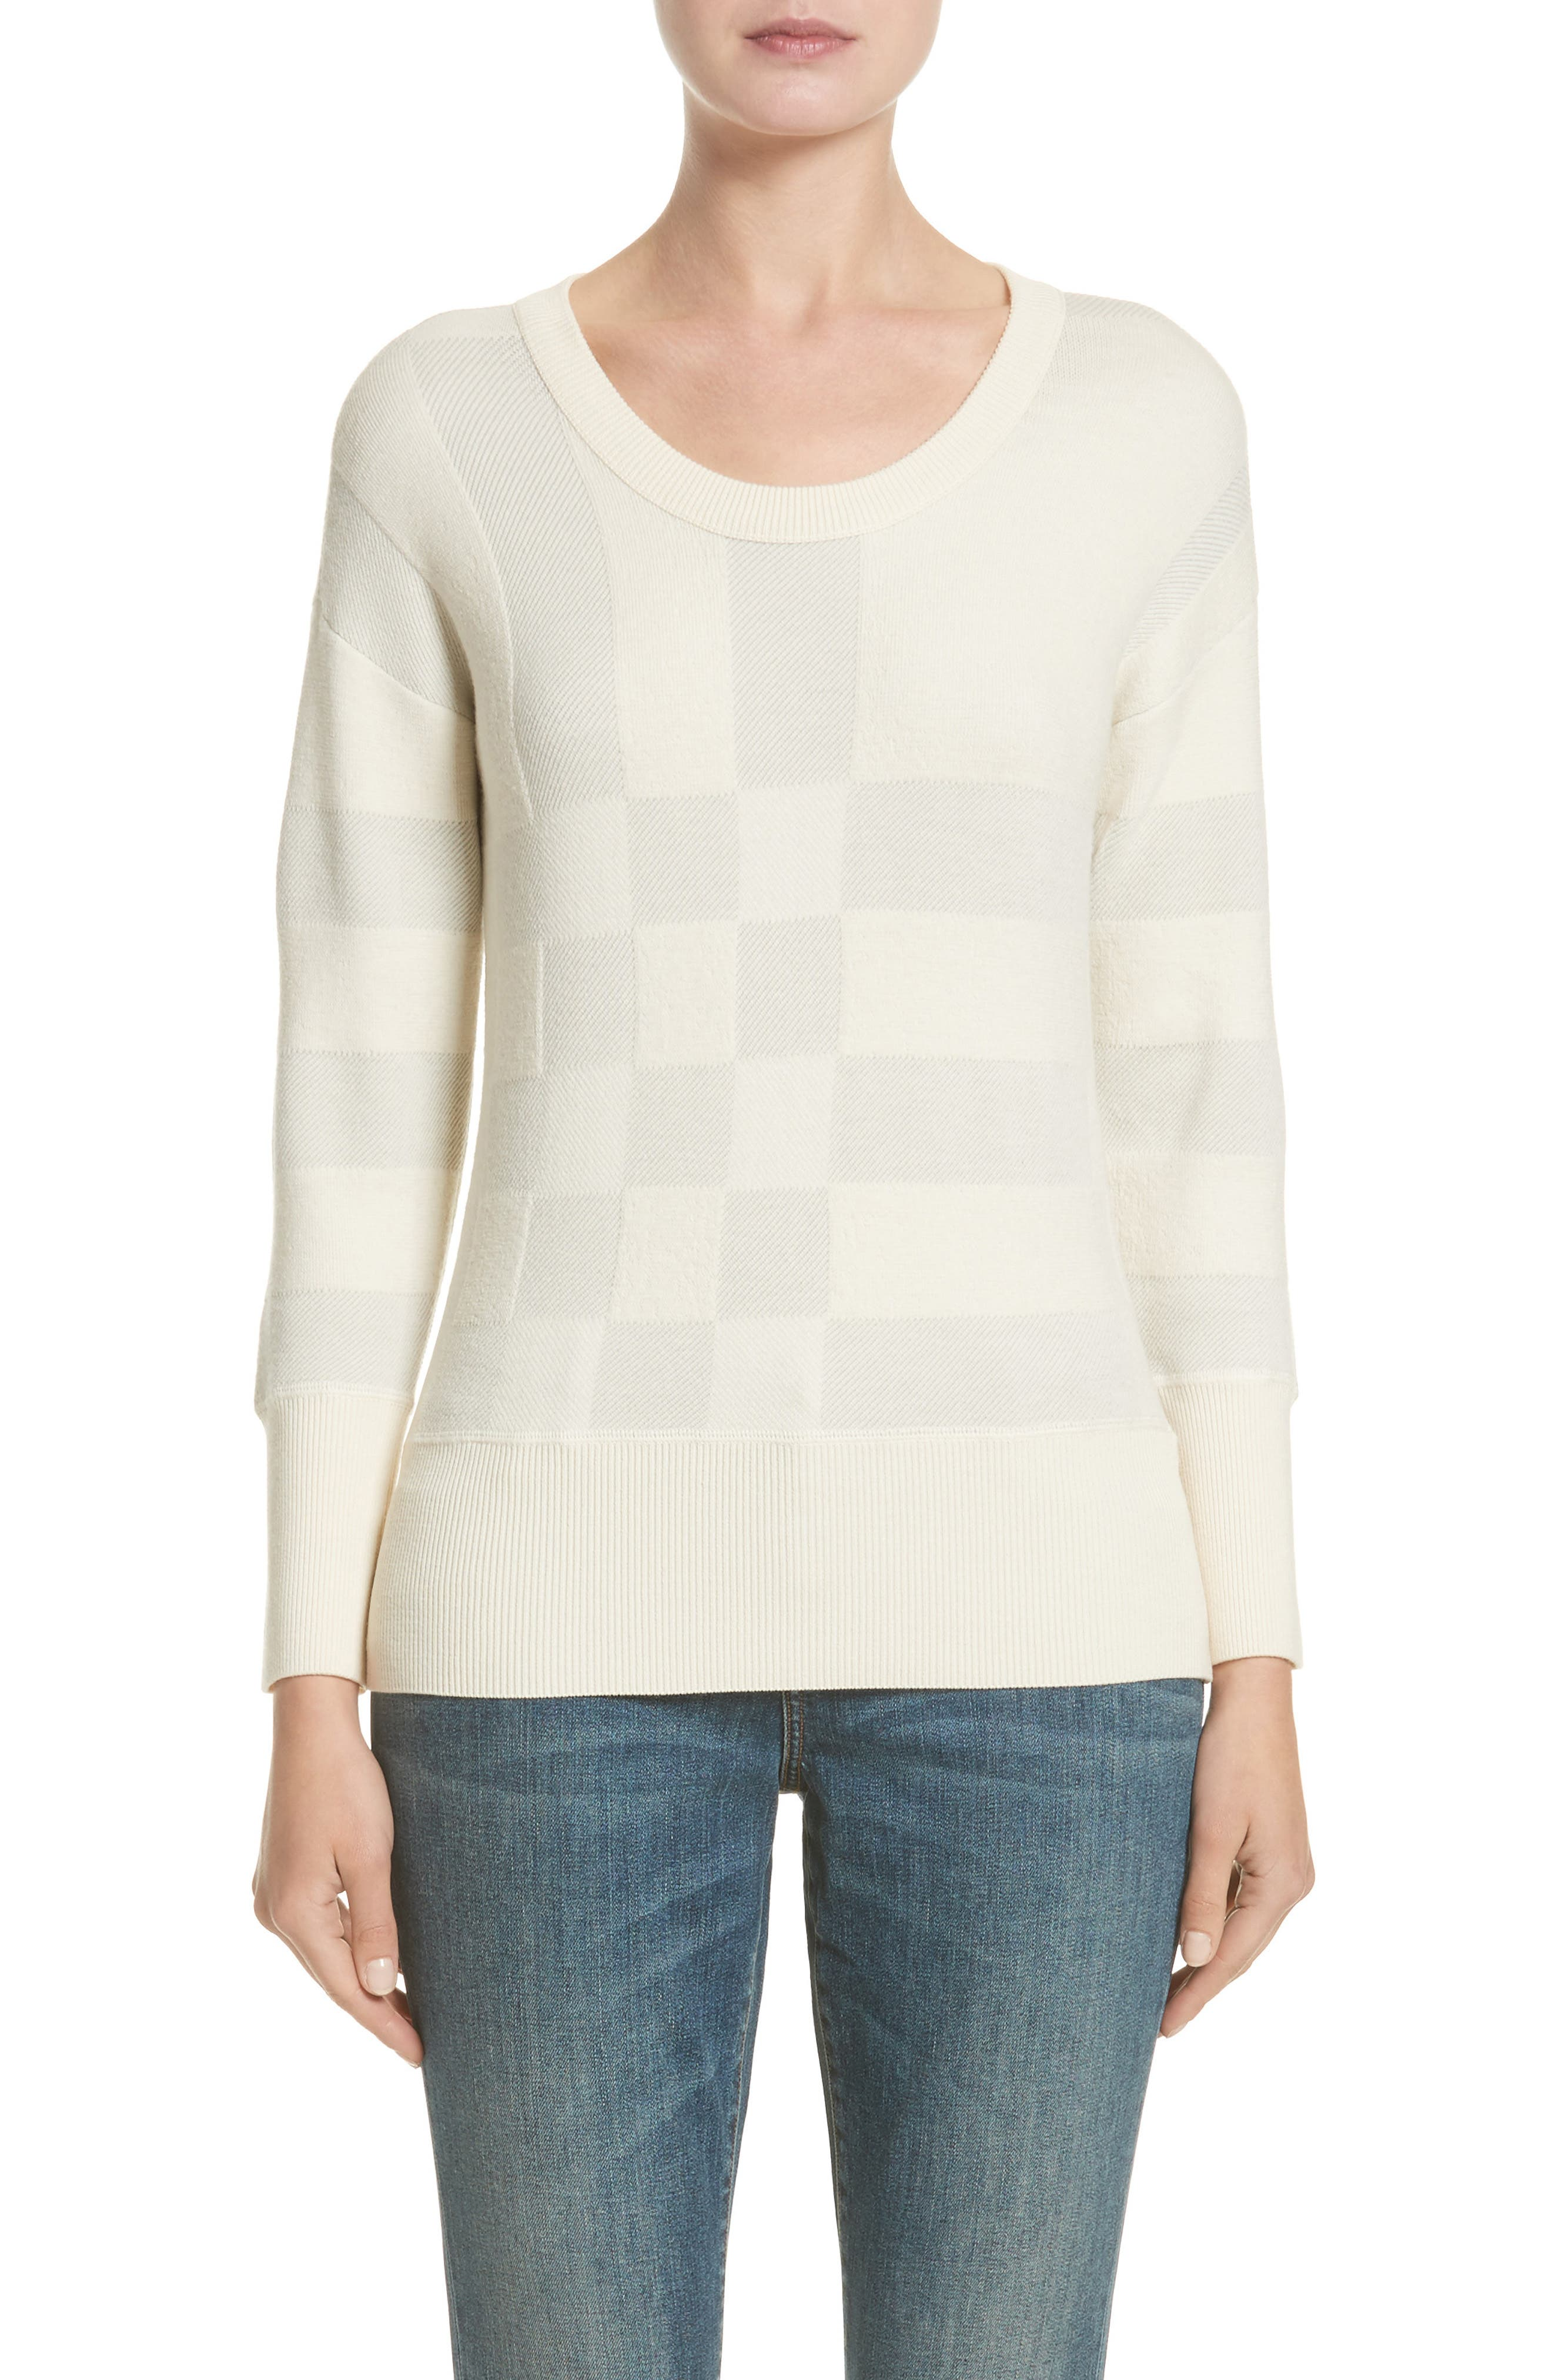 Main Image - Burberry Check Knit Wool Blend Sweater (Nordstrom Exclusive)